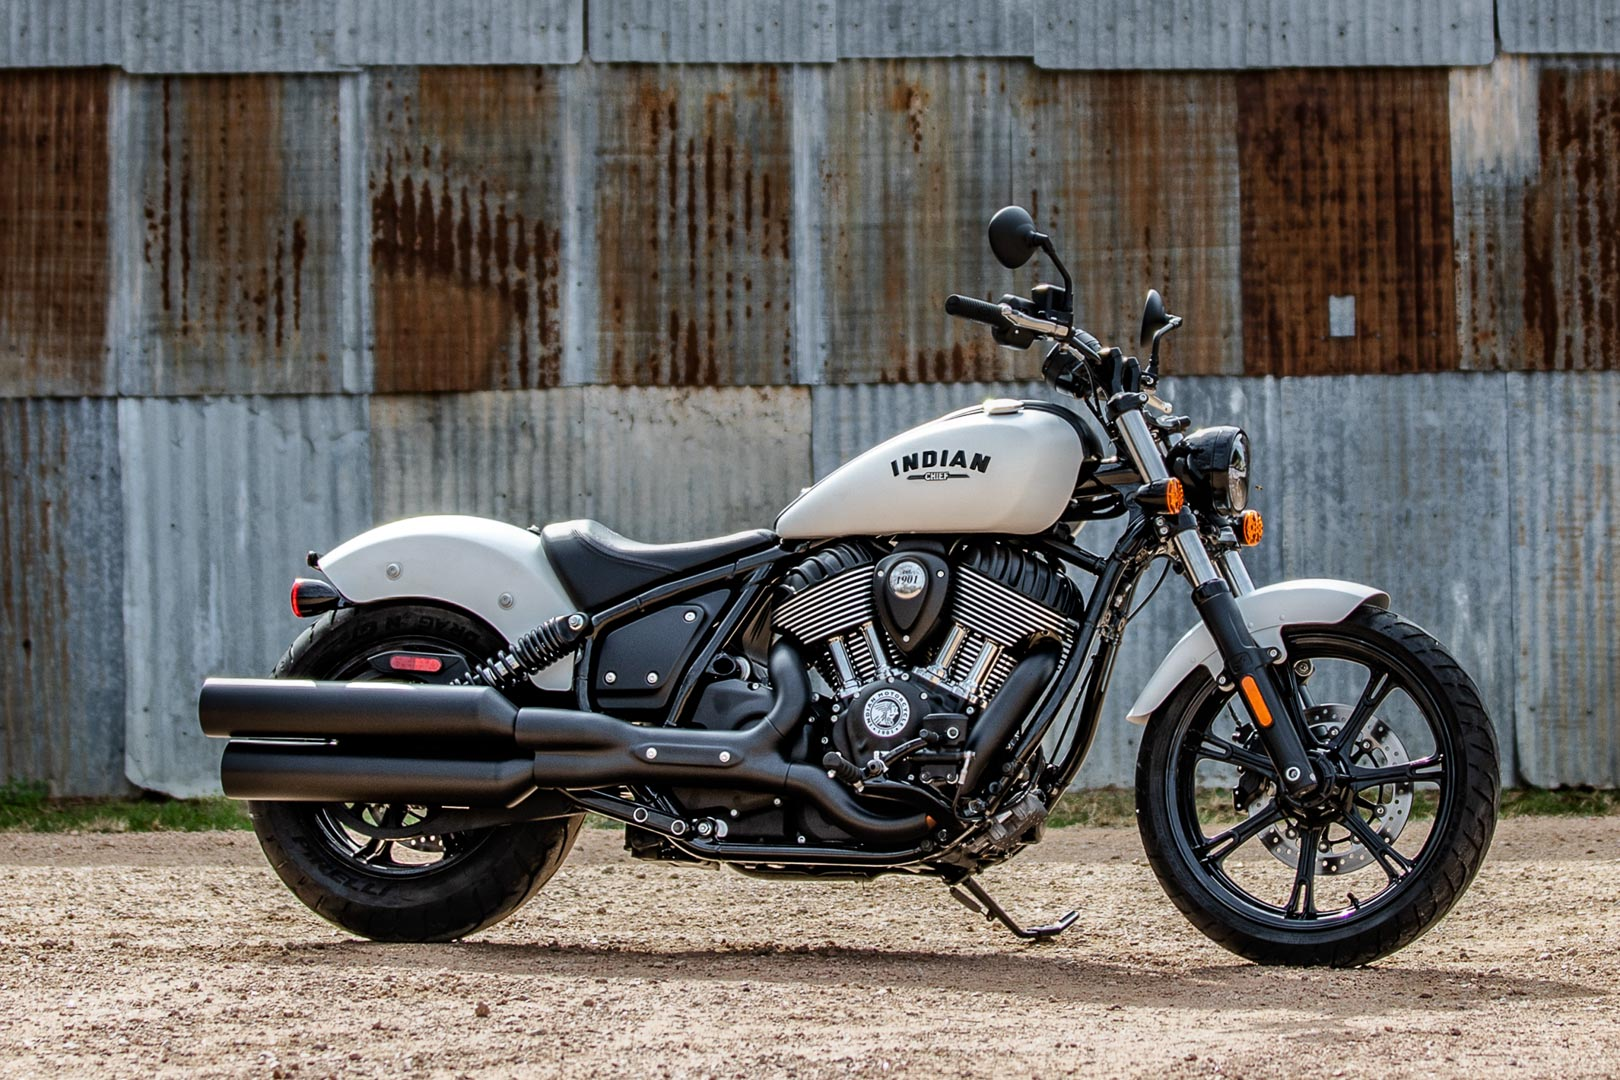 2022 Indian Chief white